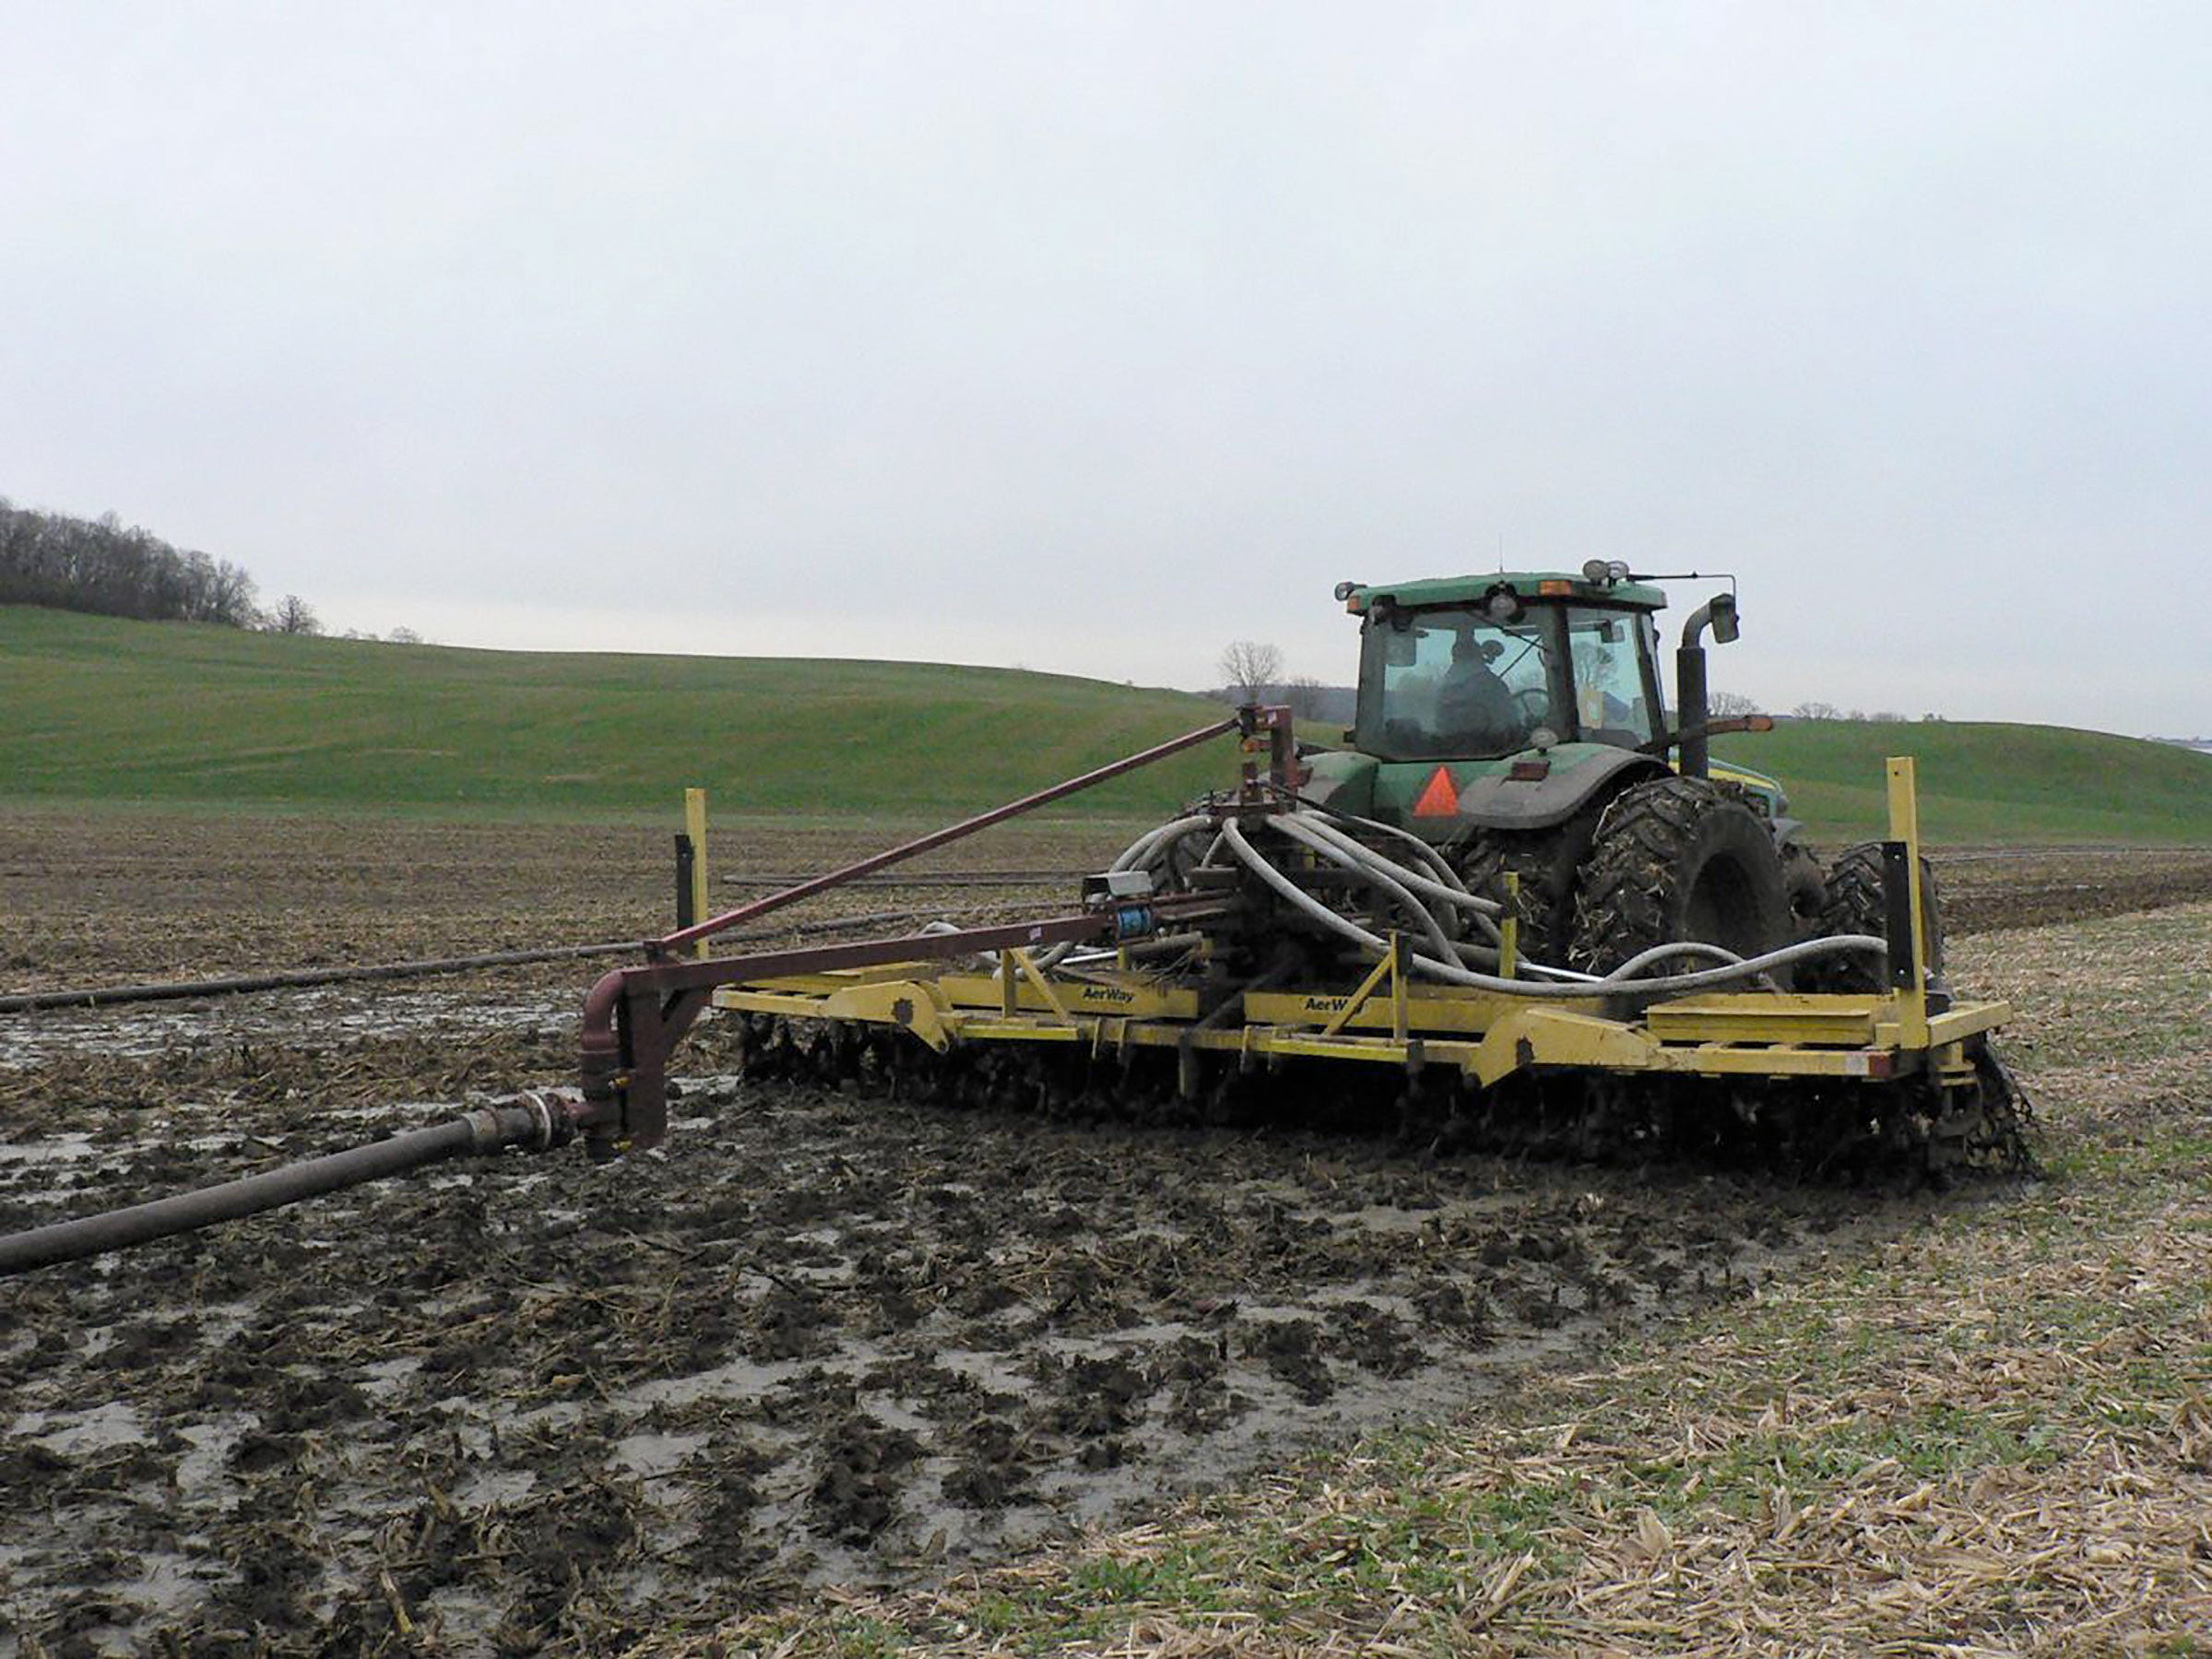 Manure from mega dairies is often drilled into the soil to prevent pollution.